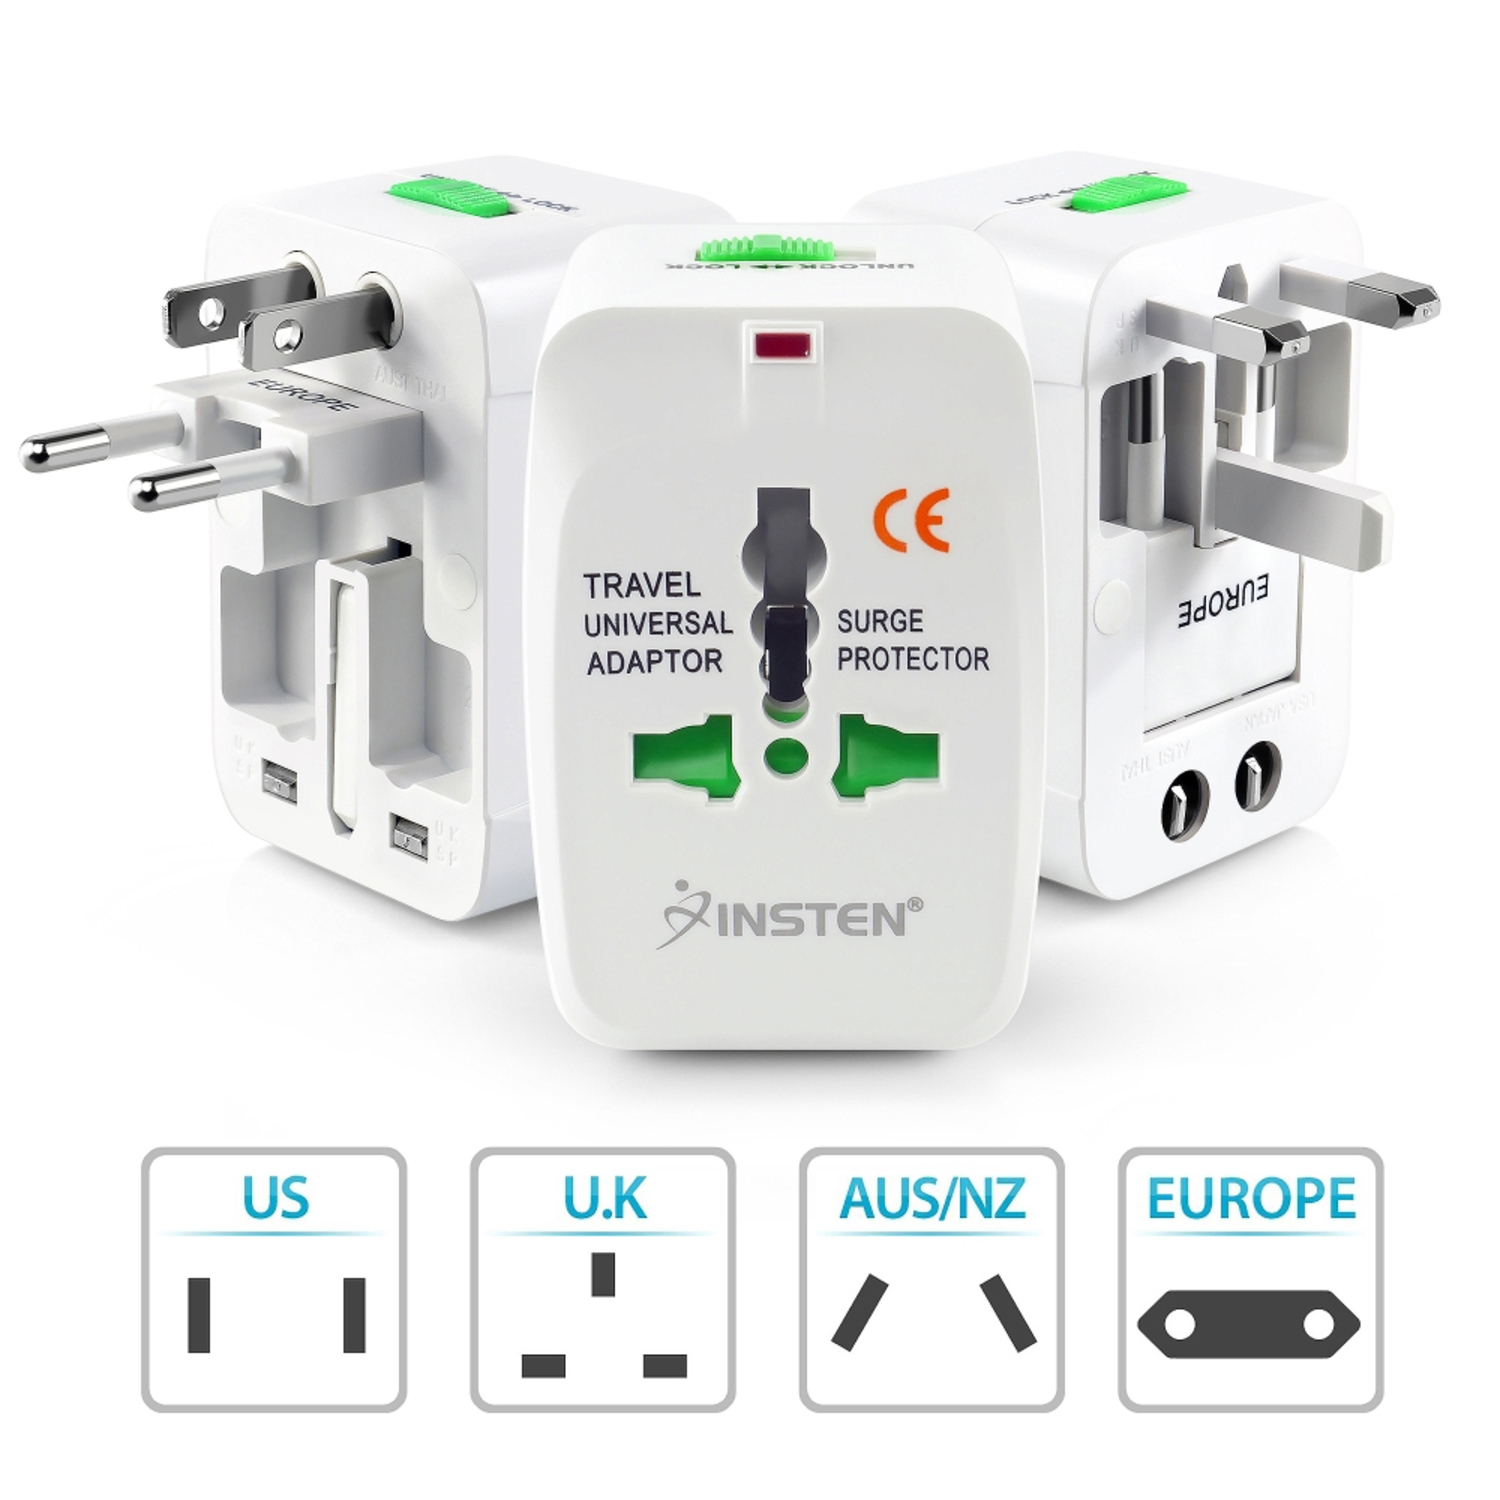 Insten 2 Pack Universal Travel AC Plug Power Charger Adapter For US UK EU AU Worldwide International